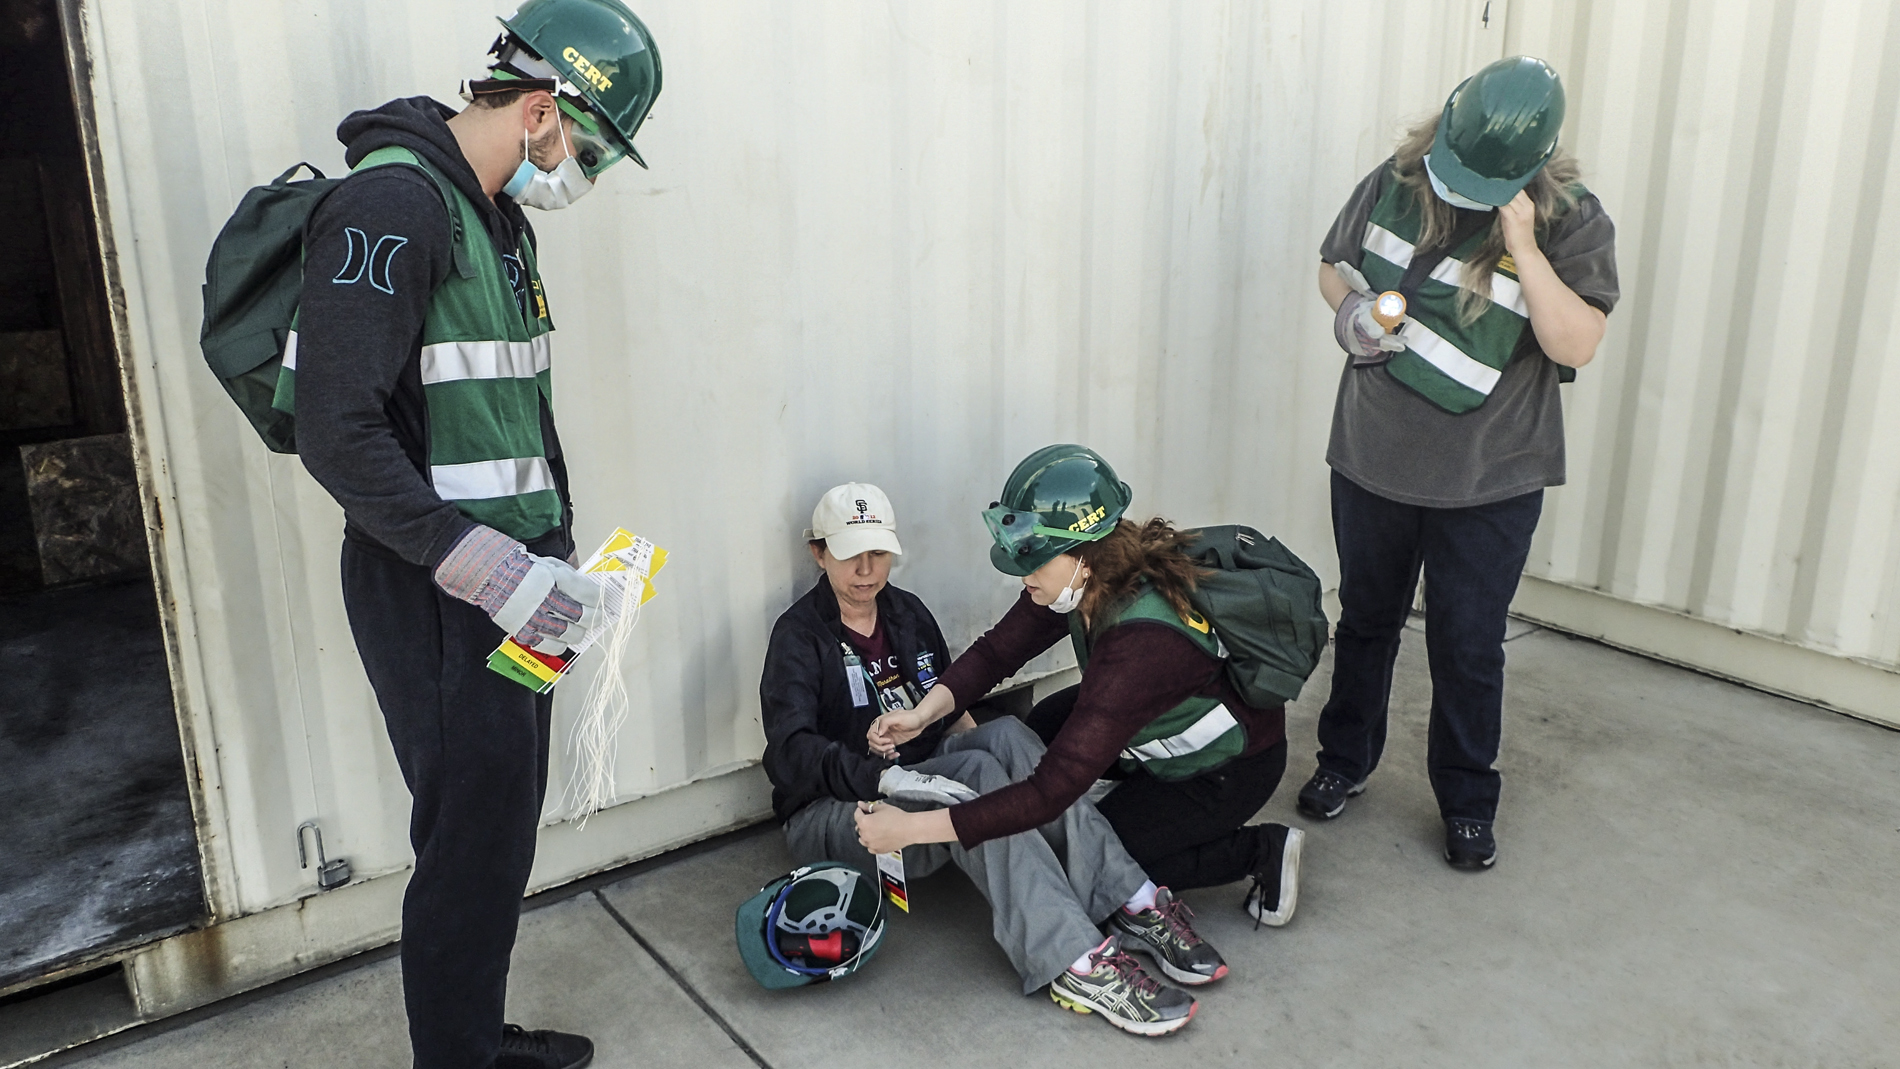 west sac community emergency response team attend to victim during training exercise